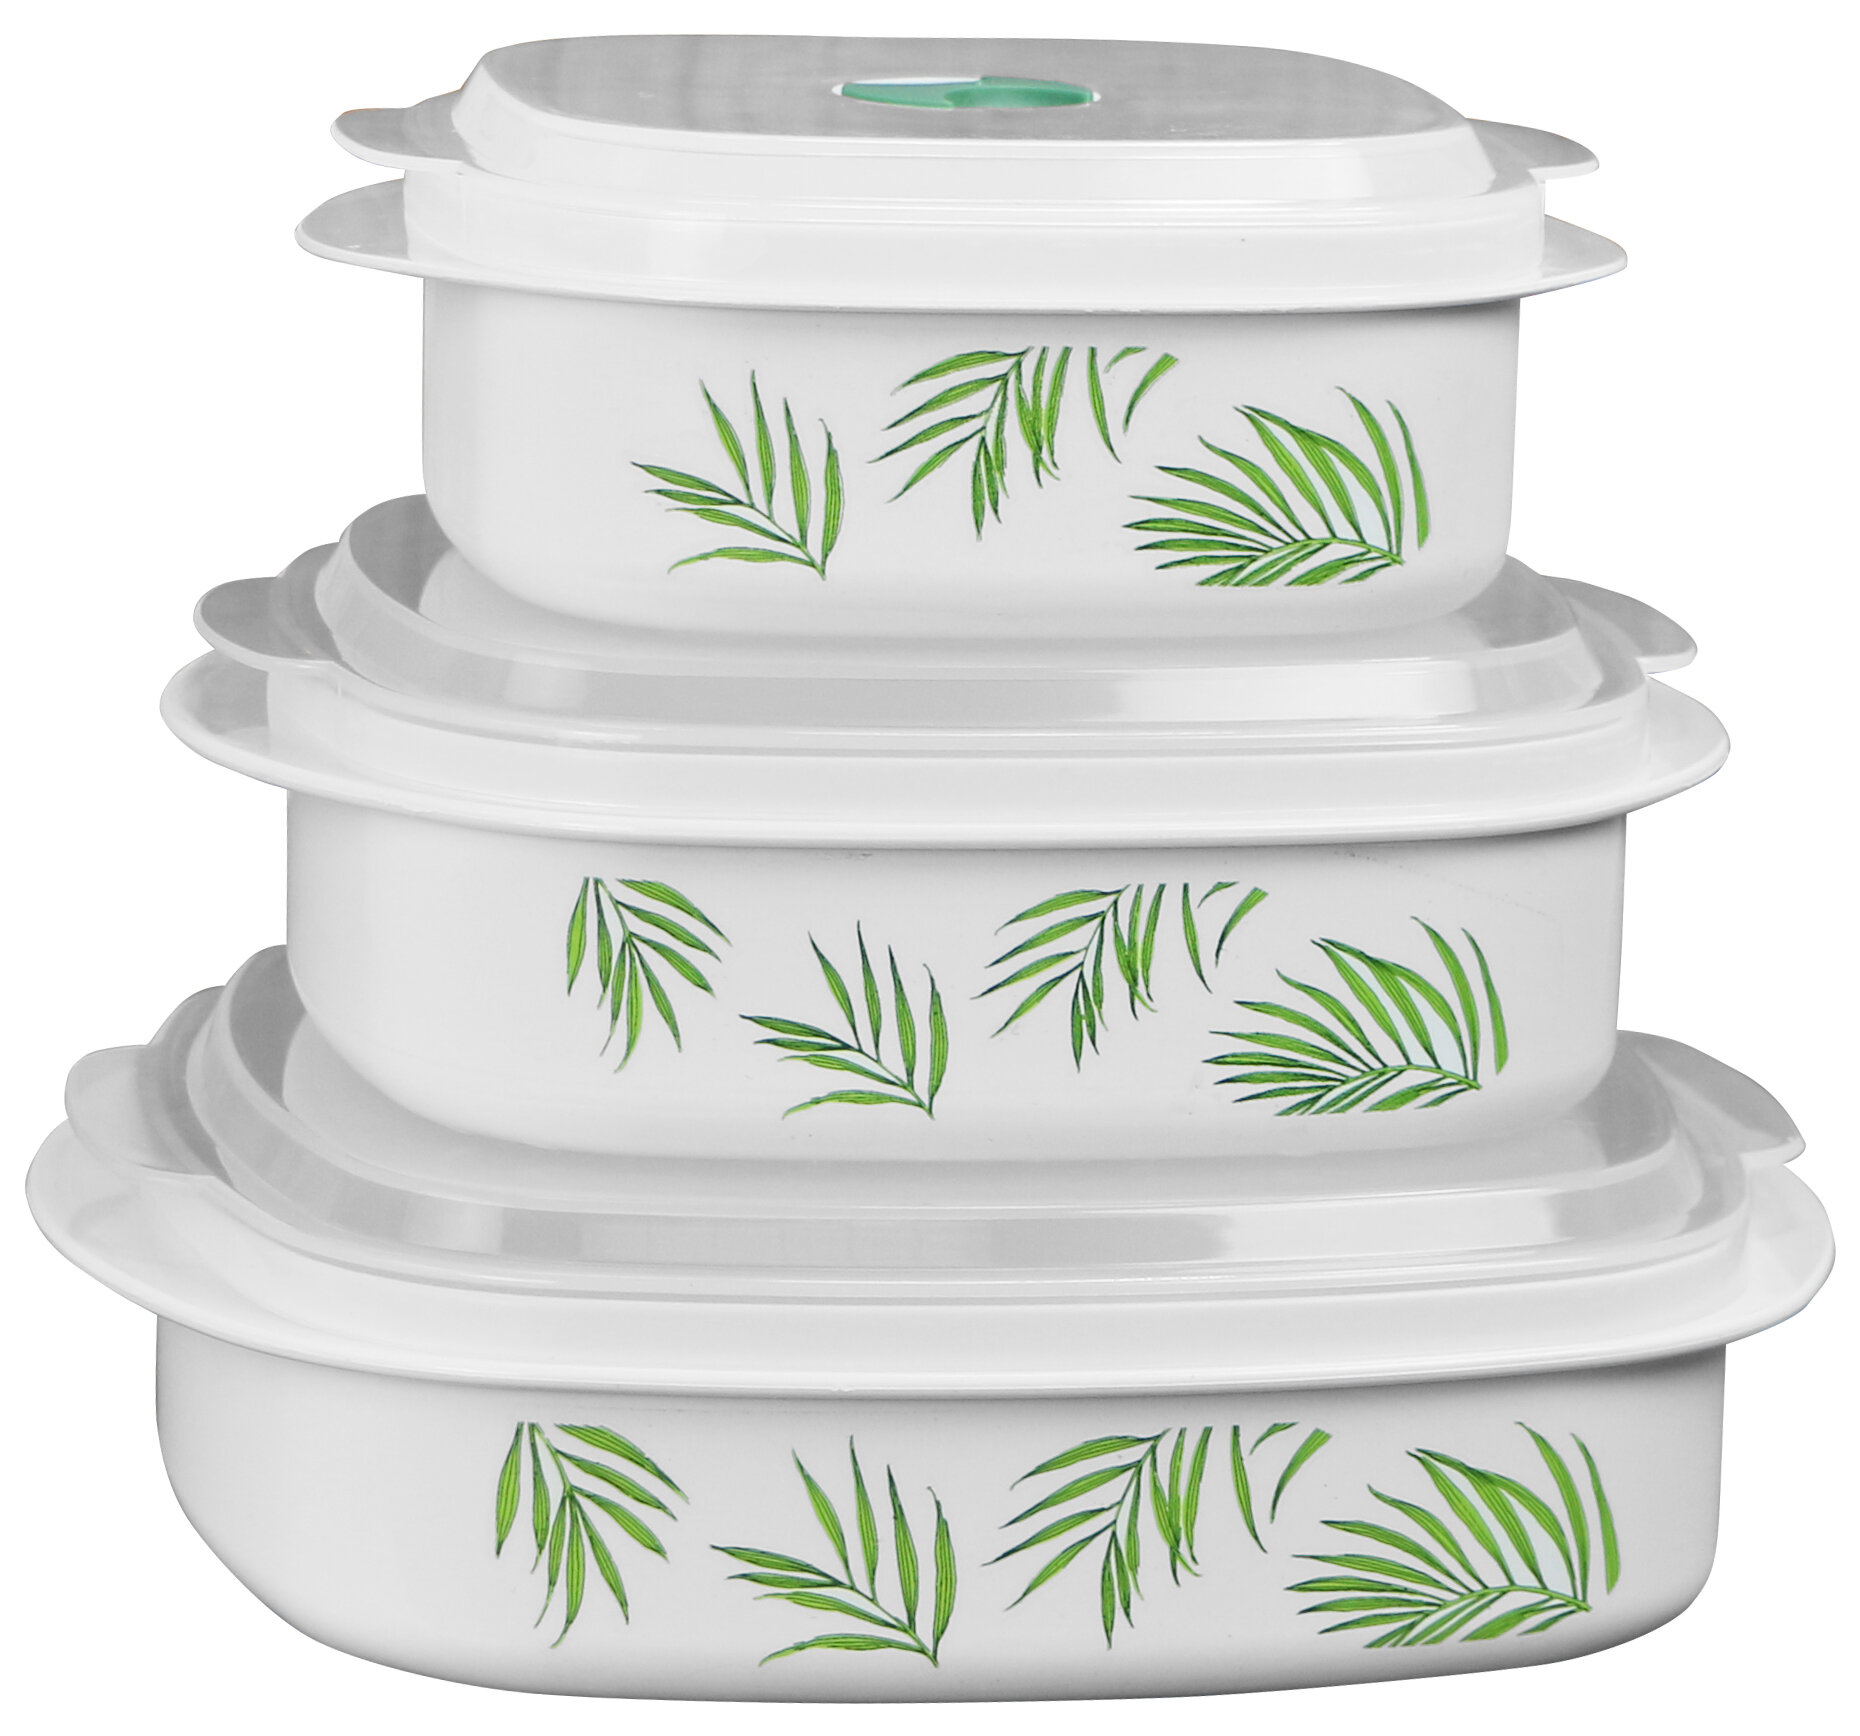 Corelle Bamboo Leaf Microwave Cookware 3 Container Food Storage Set Reviews Wayfair